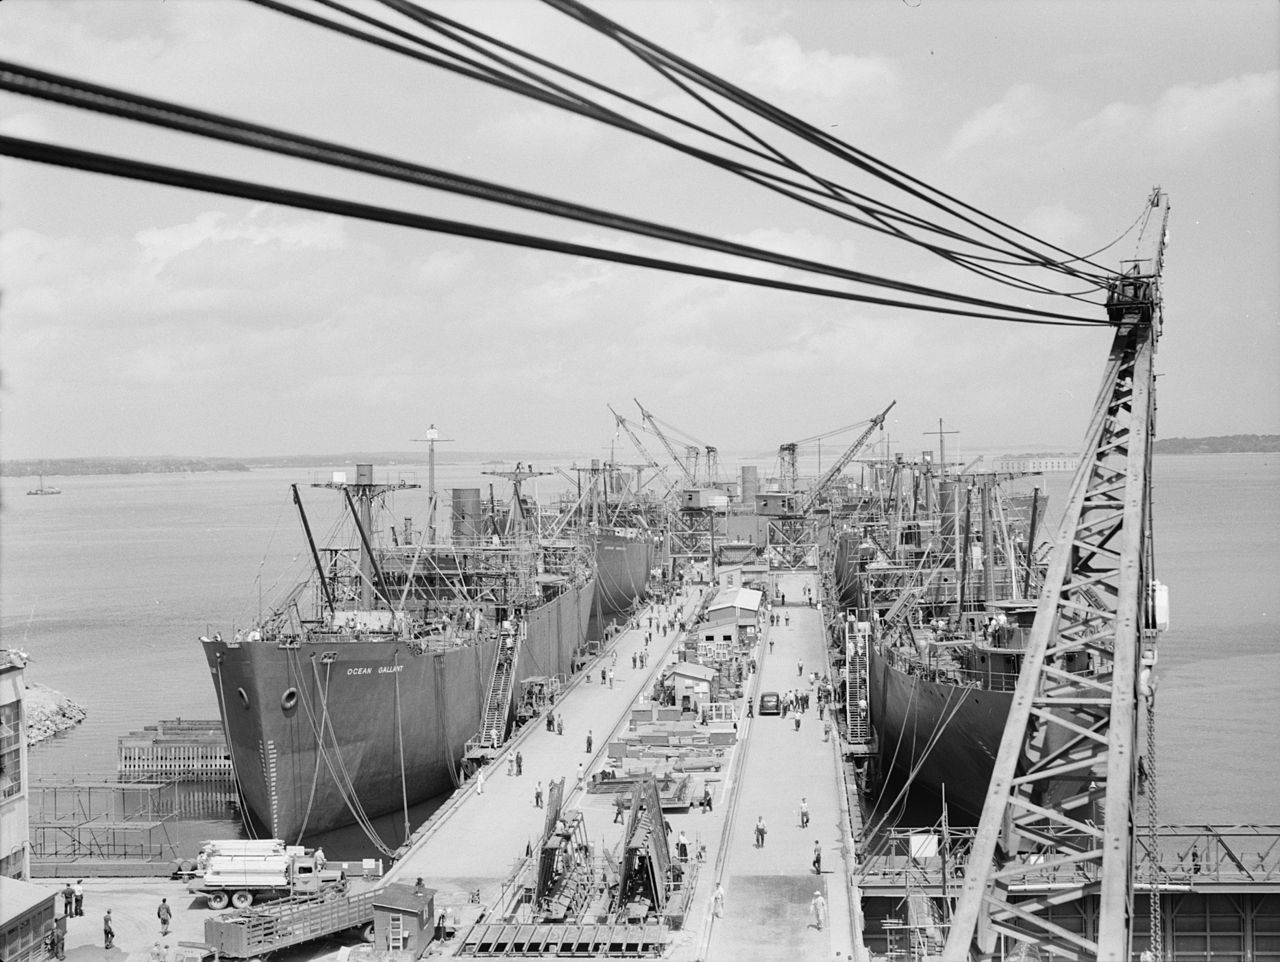 Mass launching of 5 ships, August 16, 1942 in South Portland, Maine (photo- Freeman, Albert _US Library of Congress)